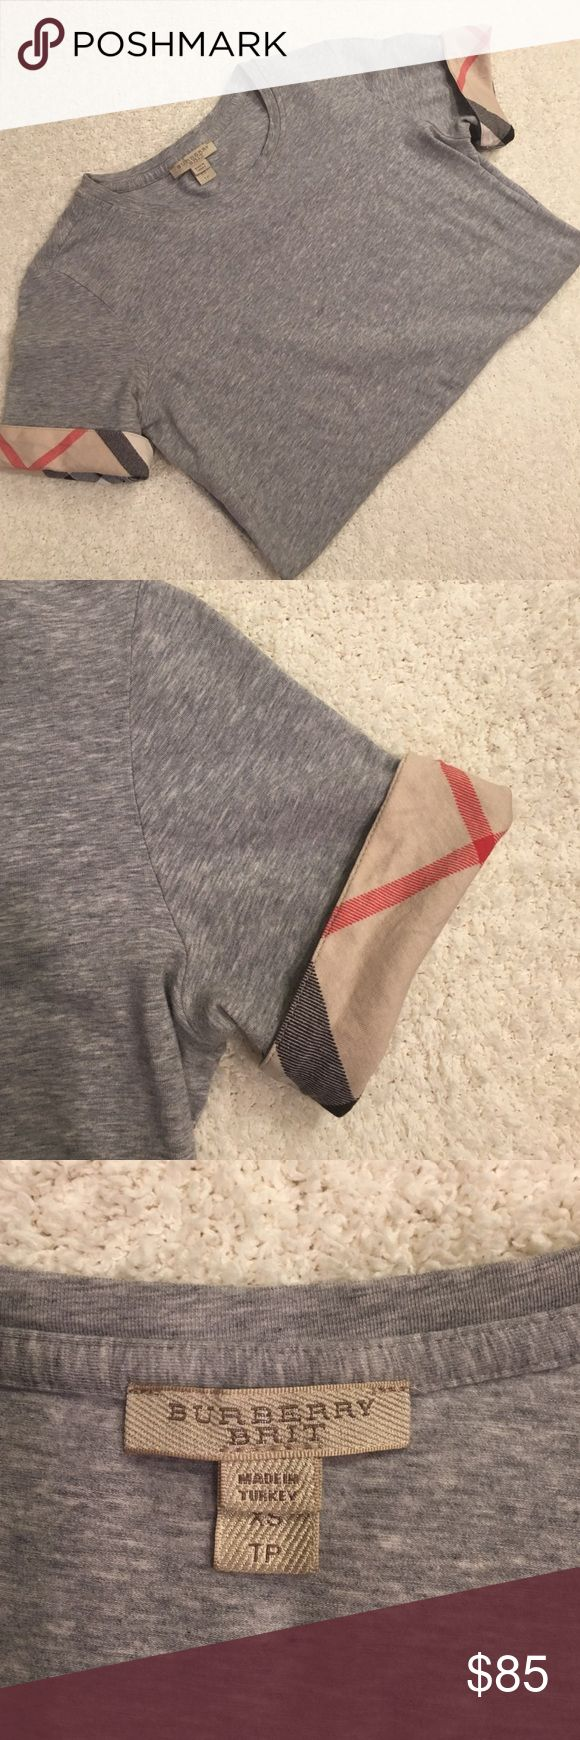 Burberry tee Grey Burberry t-shirt. Has signature plaid detailing on both sleeves. In excellent condition only worn once or twice. Size XS. The material is 93% cotton and 7% elastane. Burberry Tops Tees - Short Sleeve